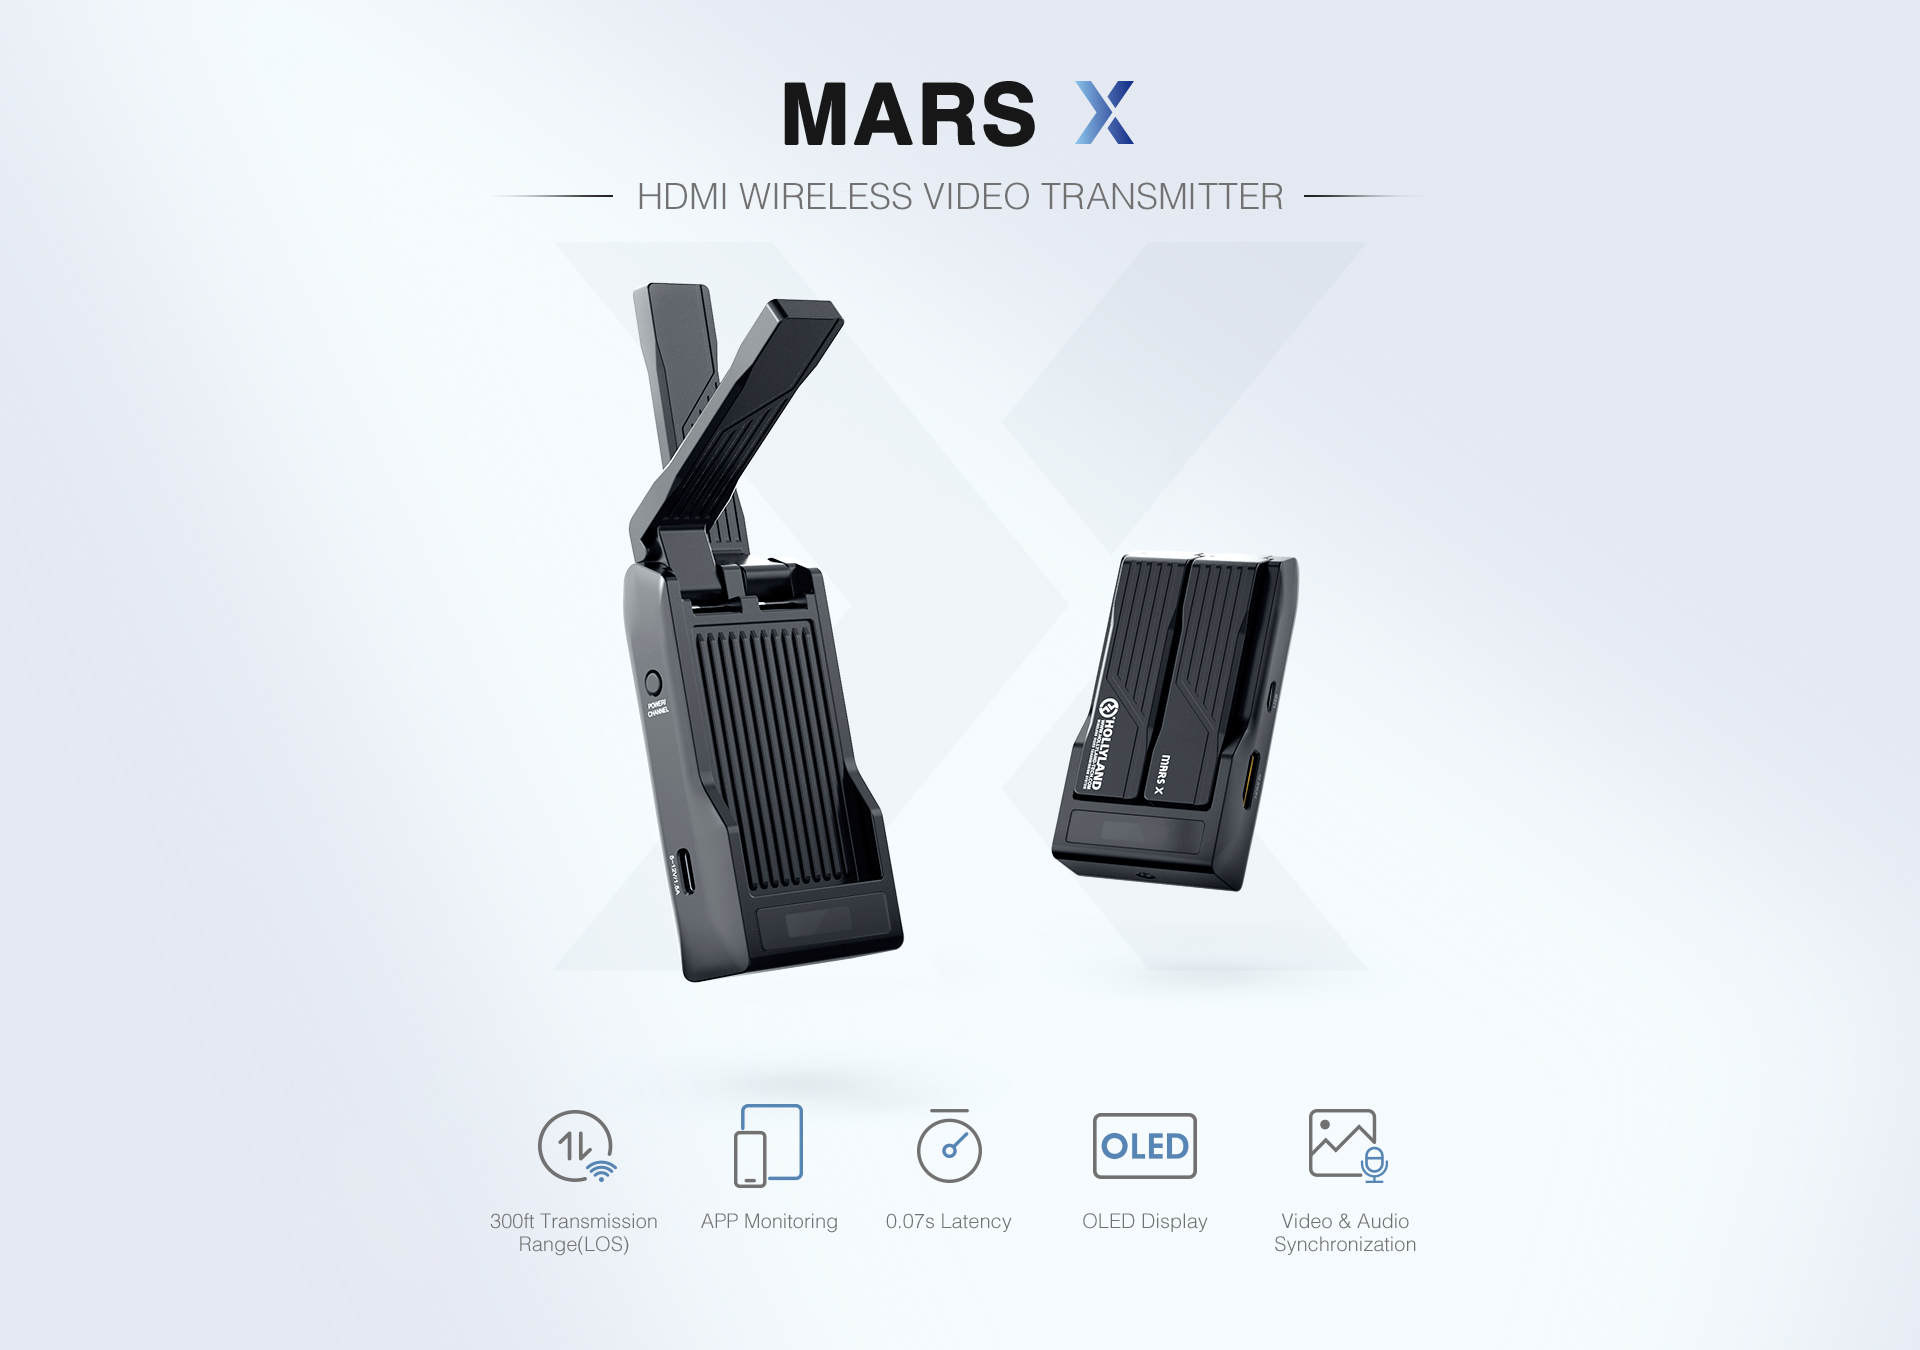 Hollyland Mars X 1080p HDMI Wireless Video Transmitter